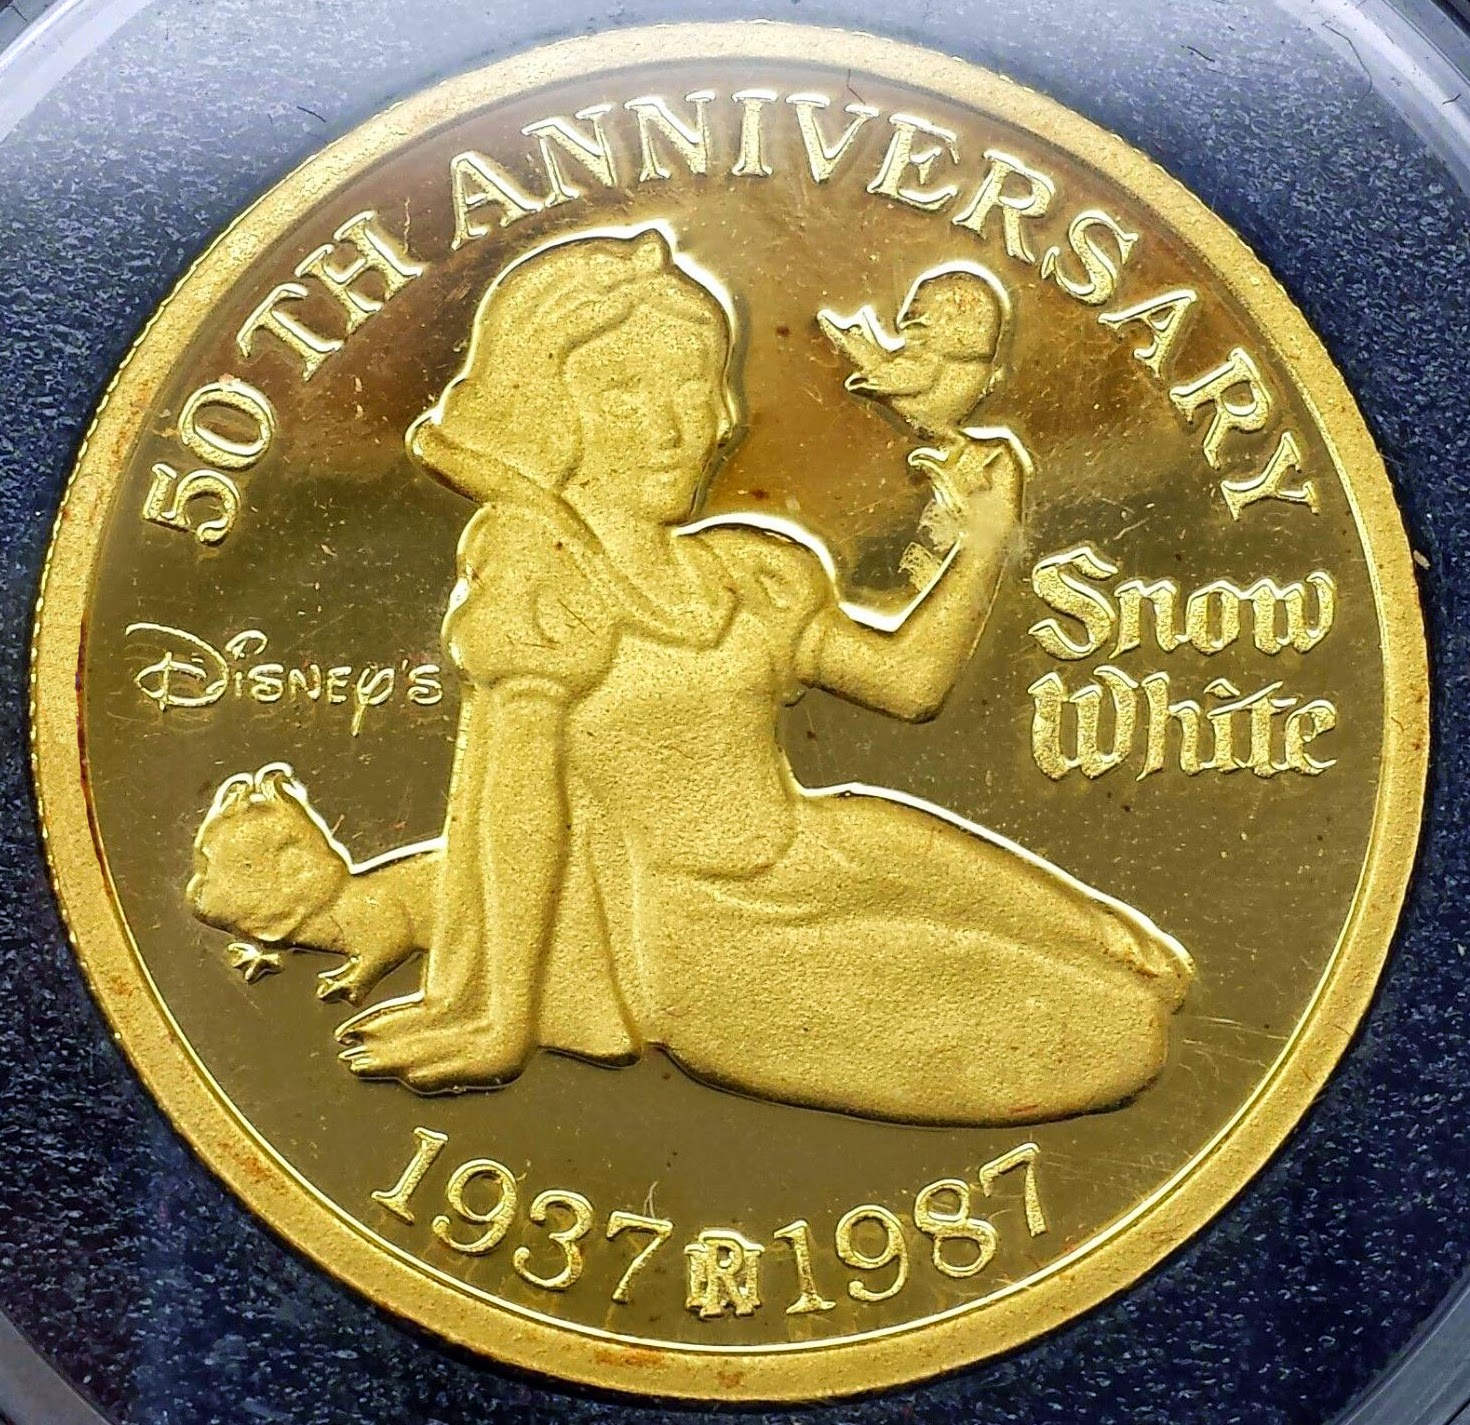 Filmic Light Snow White Archive Commemorative Coins 50th Anniversary 1987